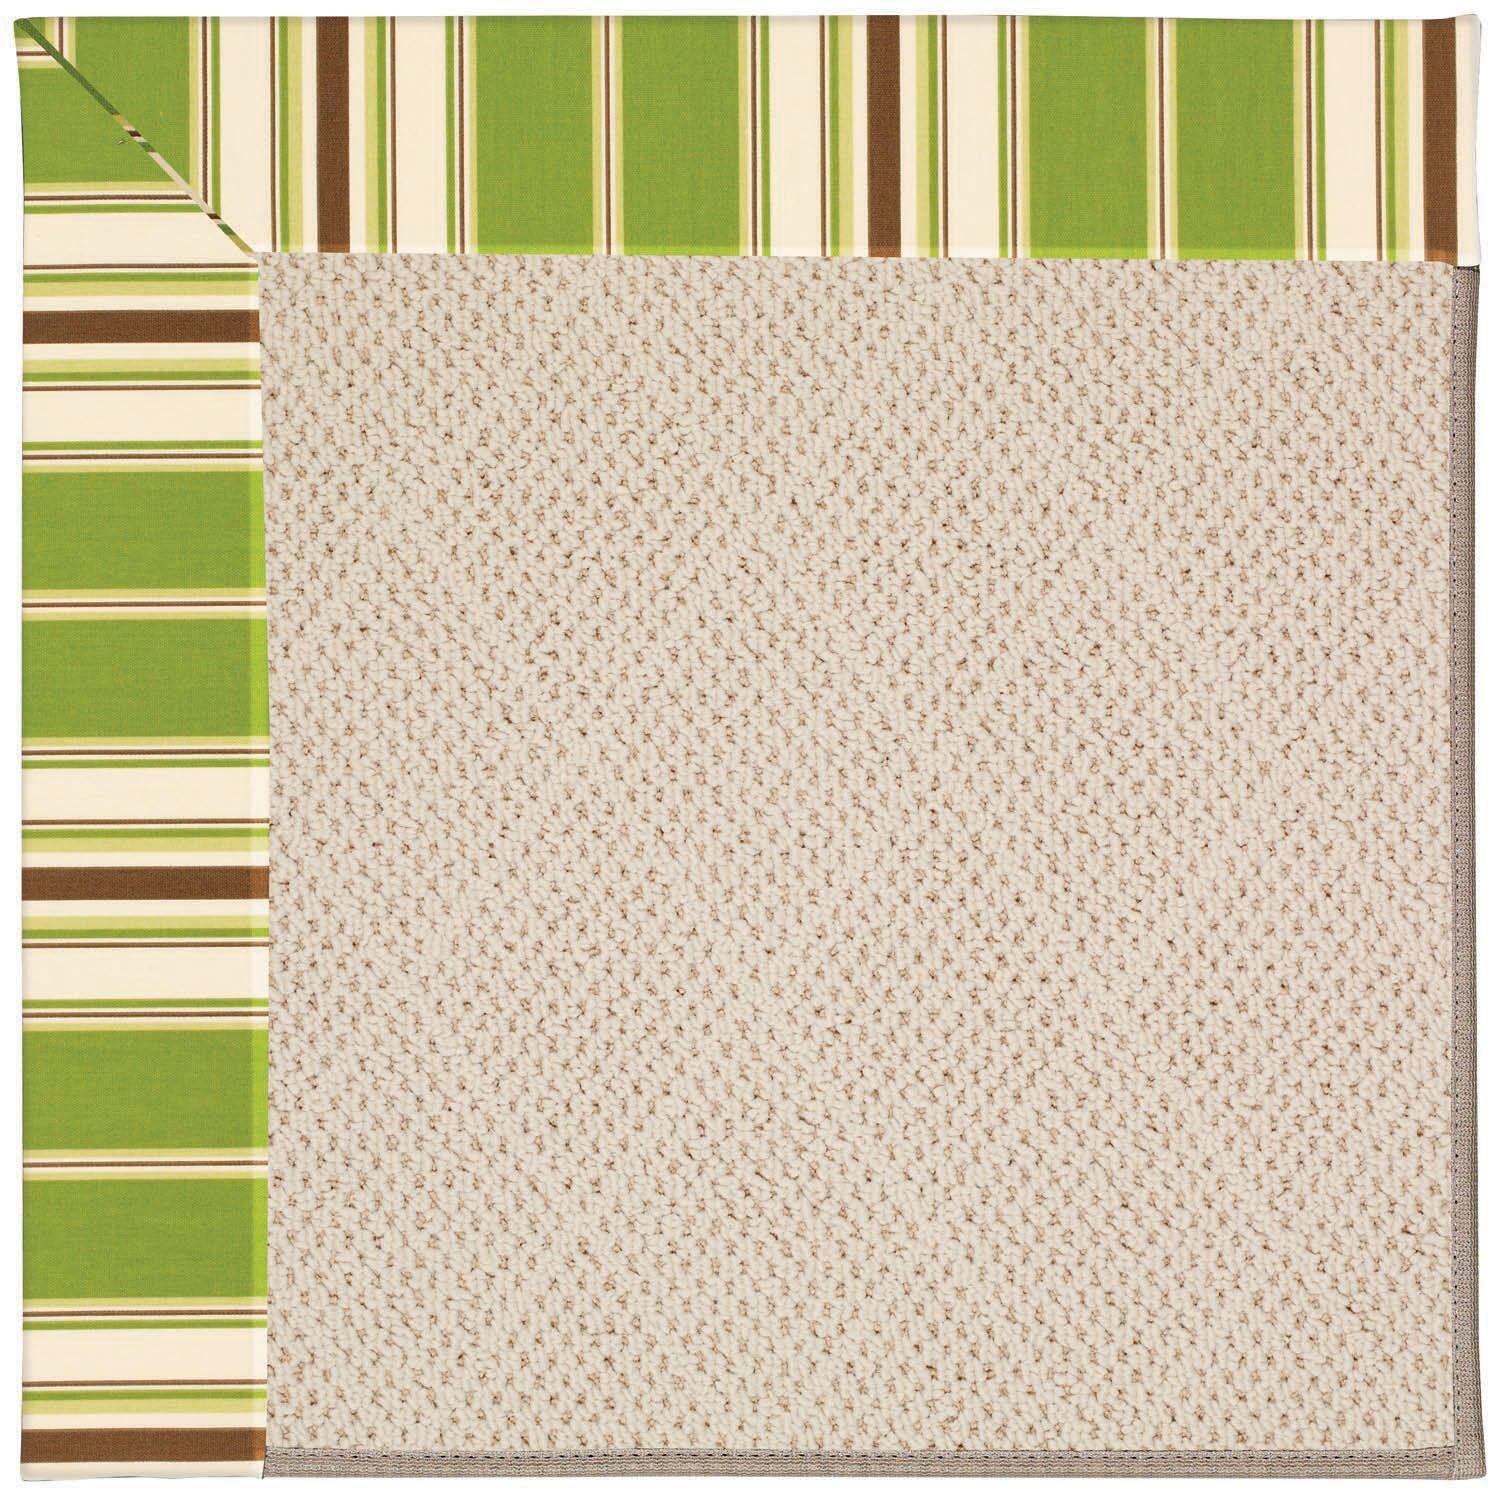 Lisle Beige Indoor/Outdoor Area Rug Rug Size: Square 6'